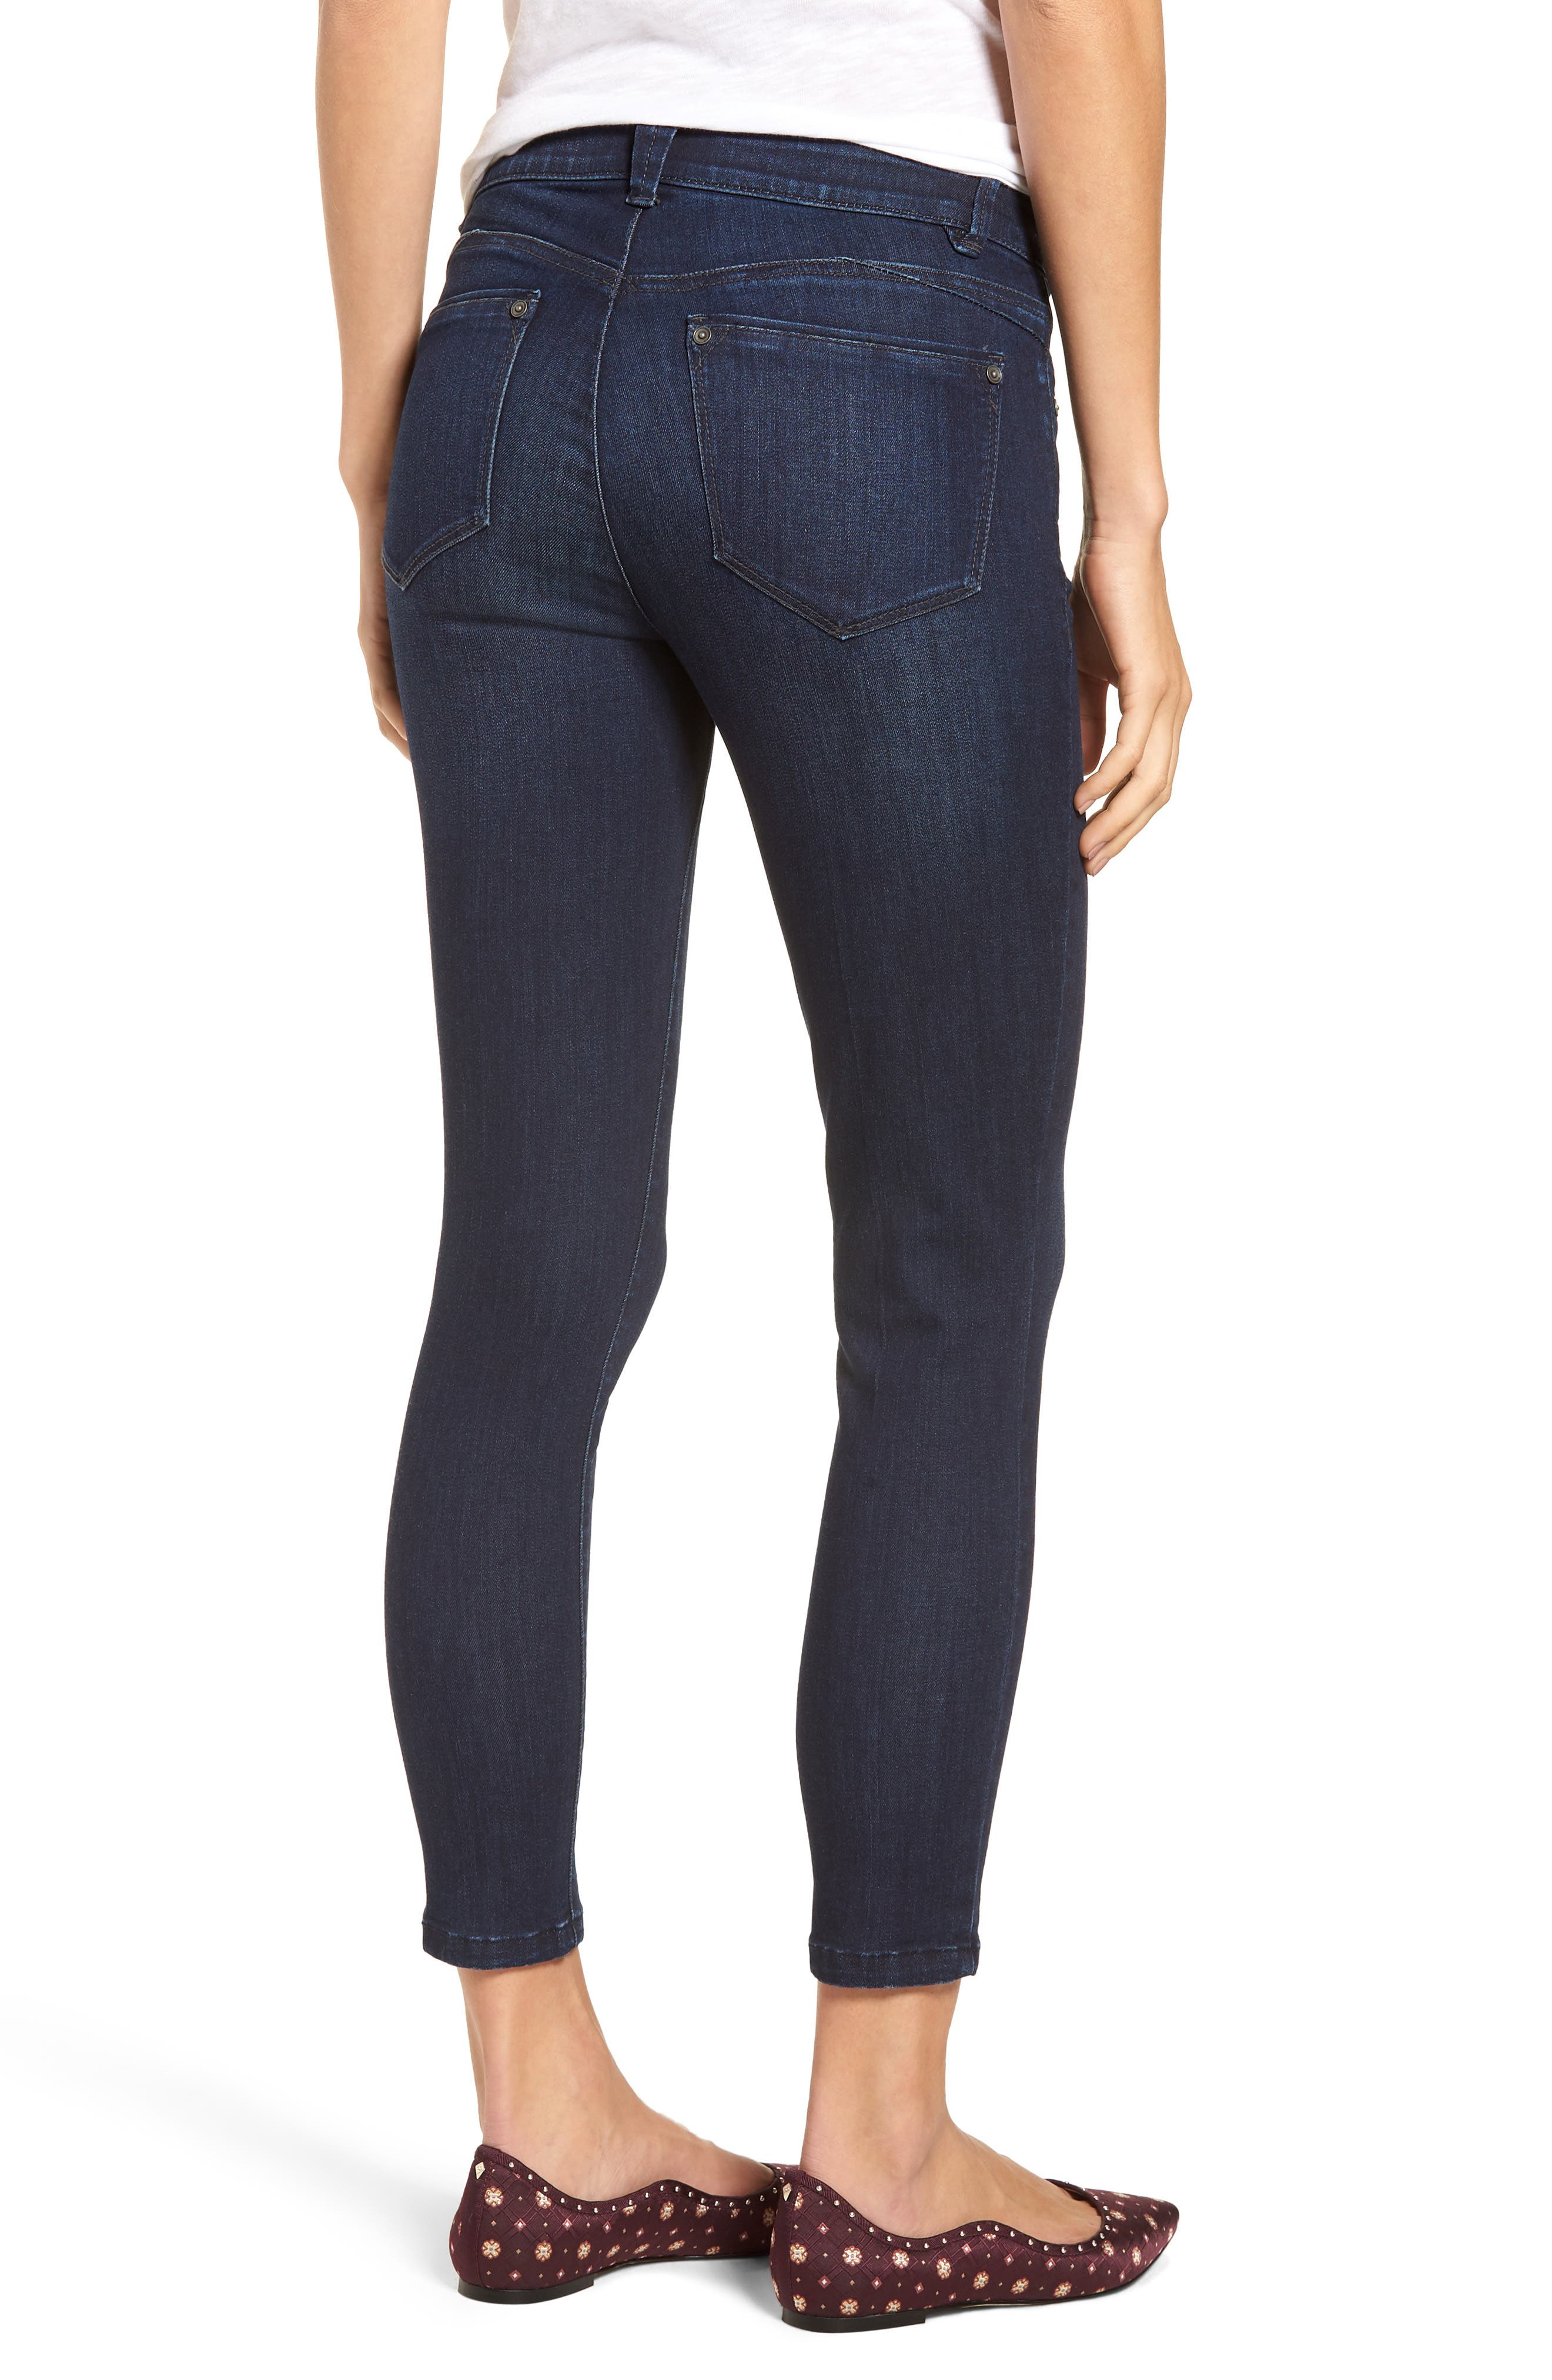 Ab-solution Skinny Jeans,                             Alternate thumbnail 2, color,                             In- Indigo